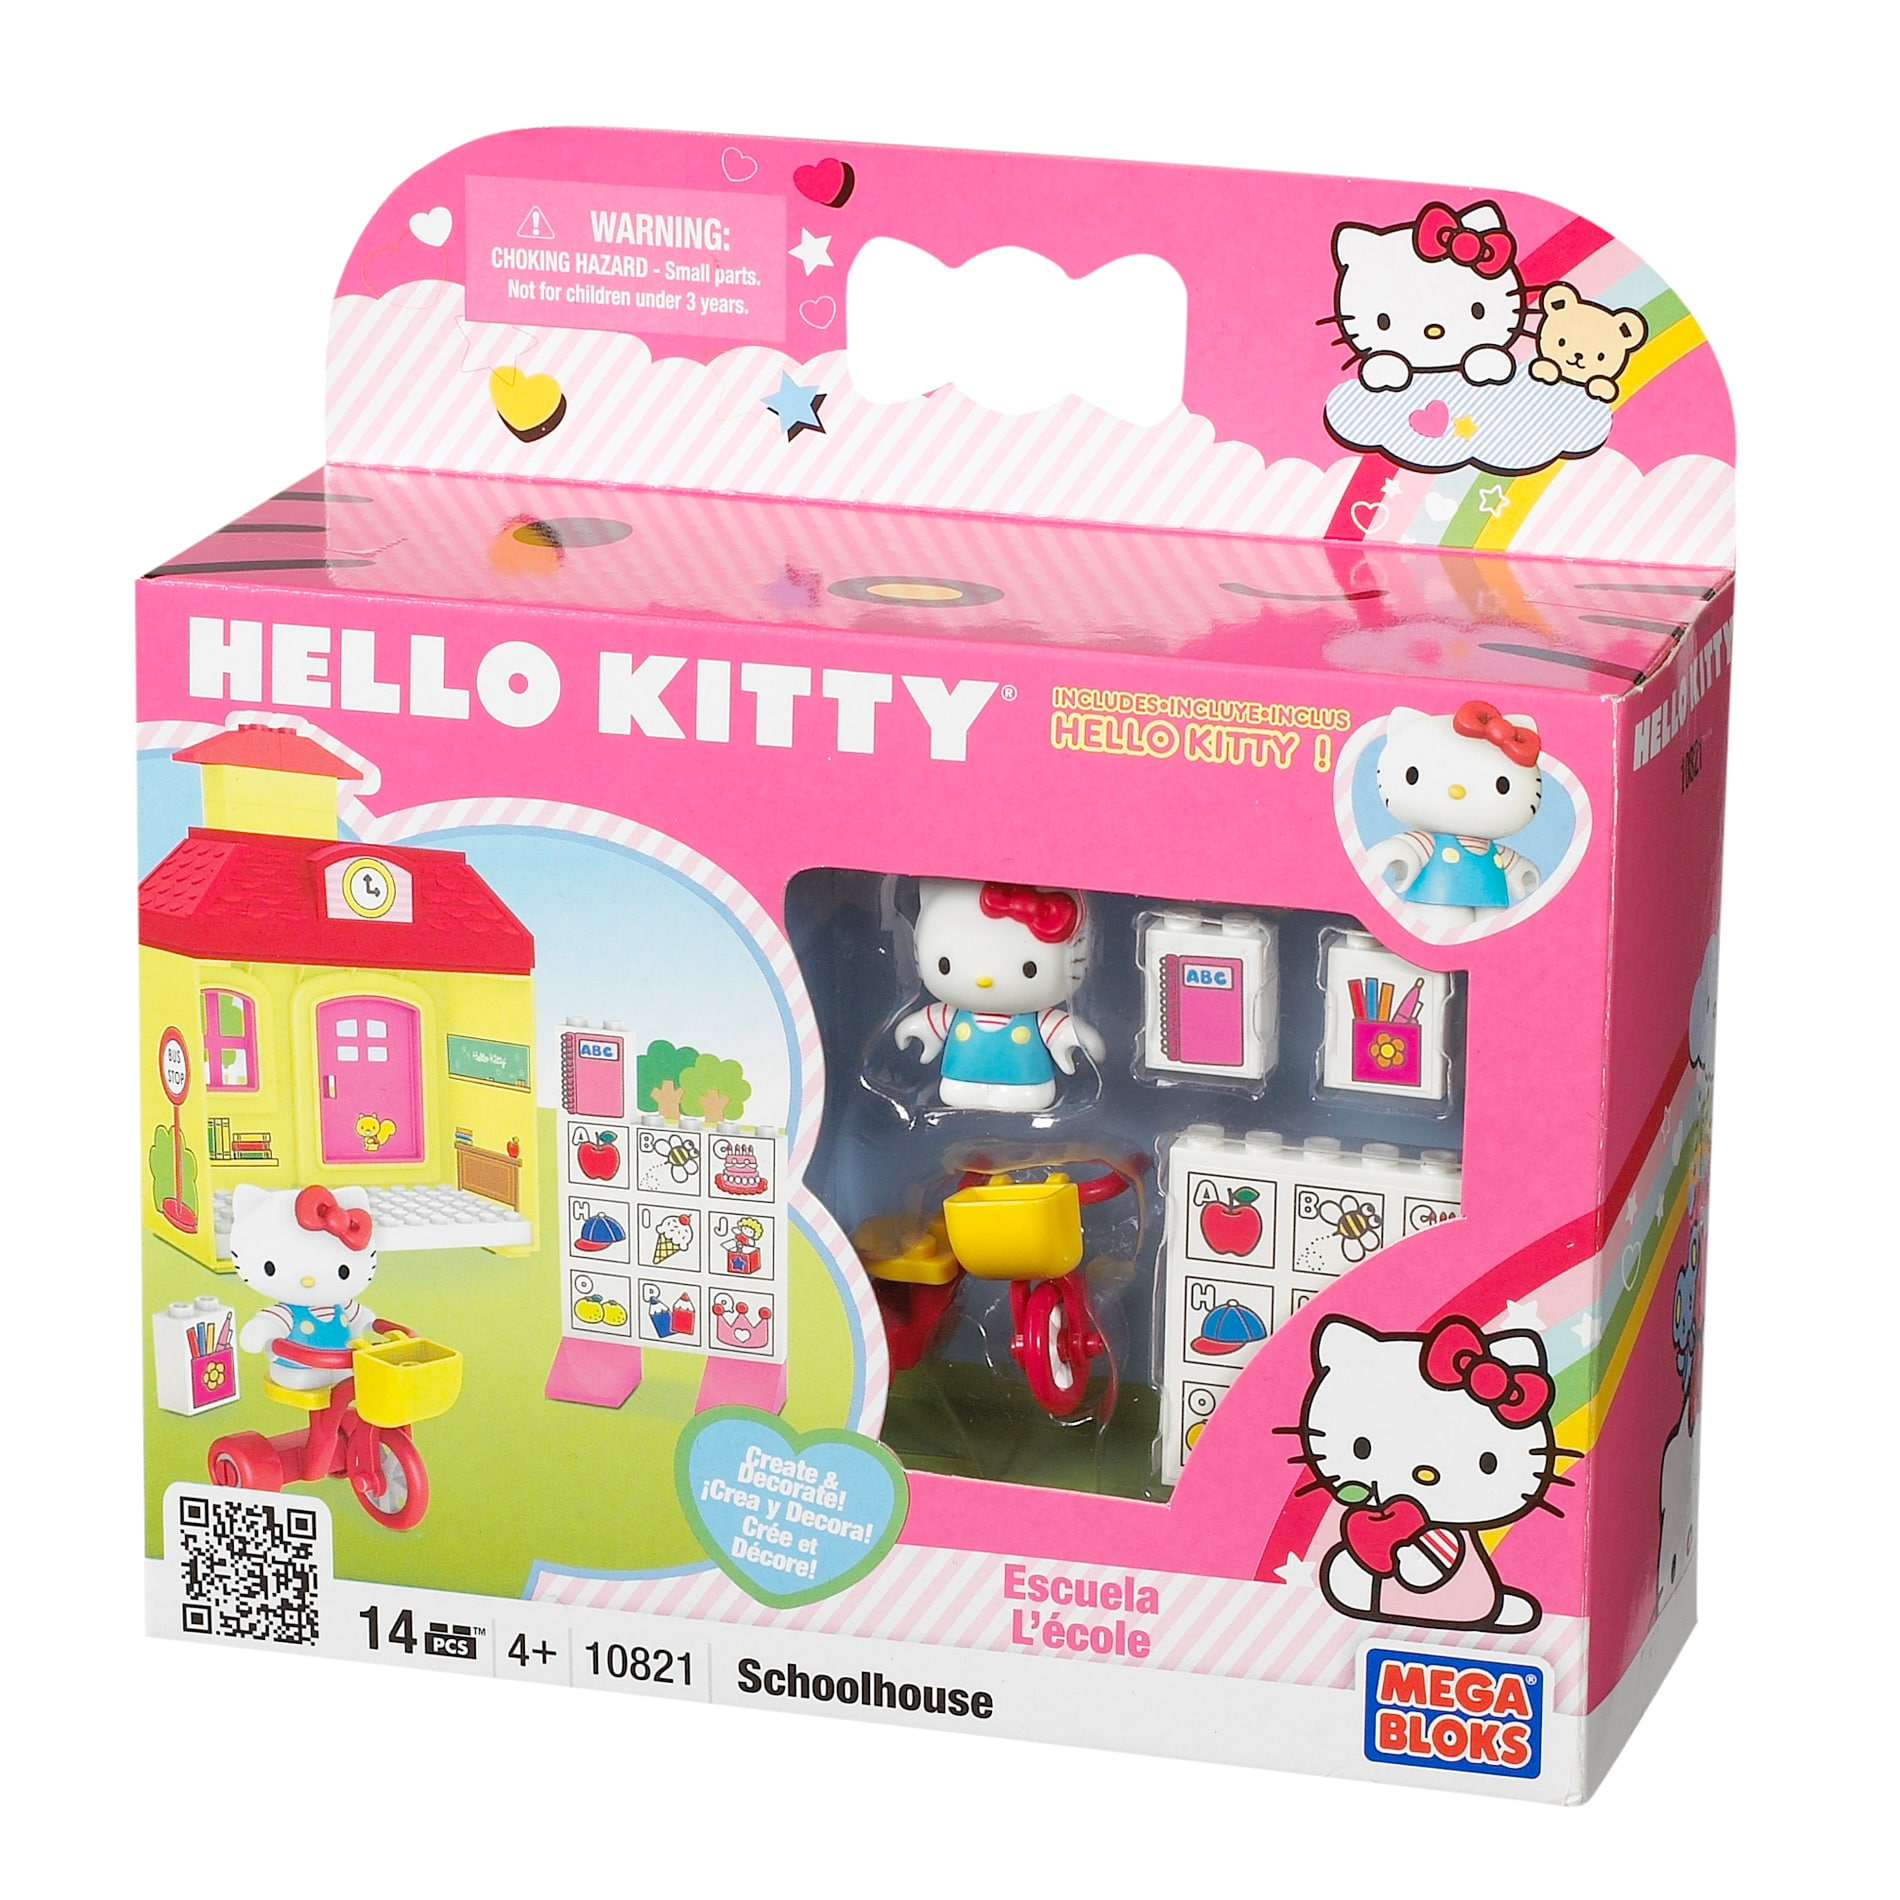 Mega Bloks Hello Kitty School House Play Set